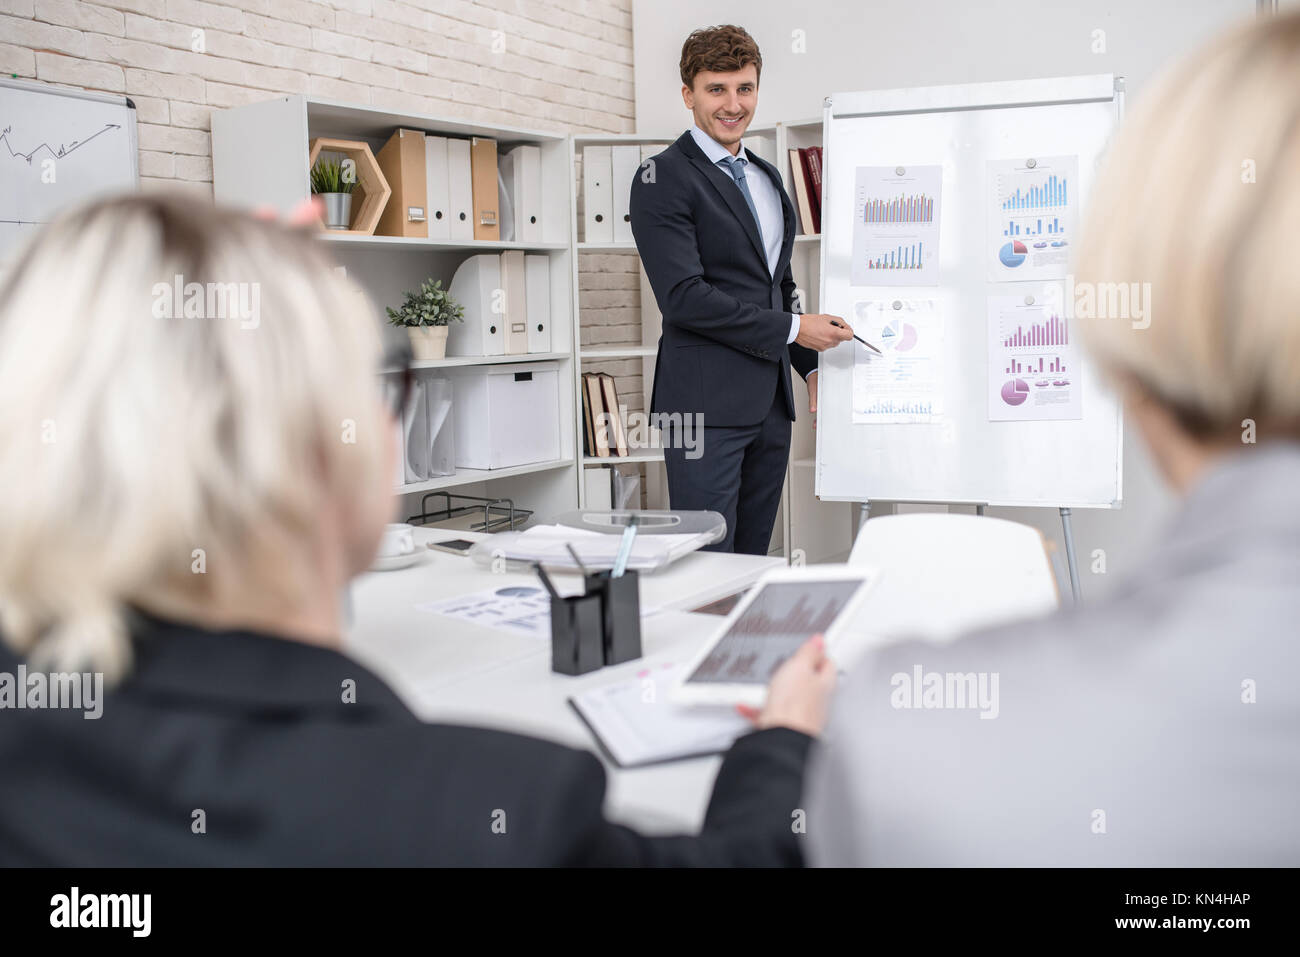 Young Man Presenting Project in Office - Stock Image